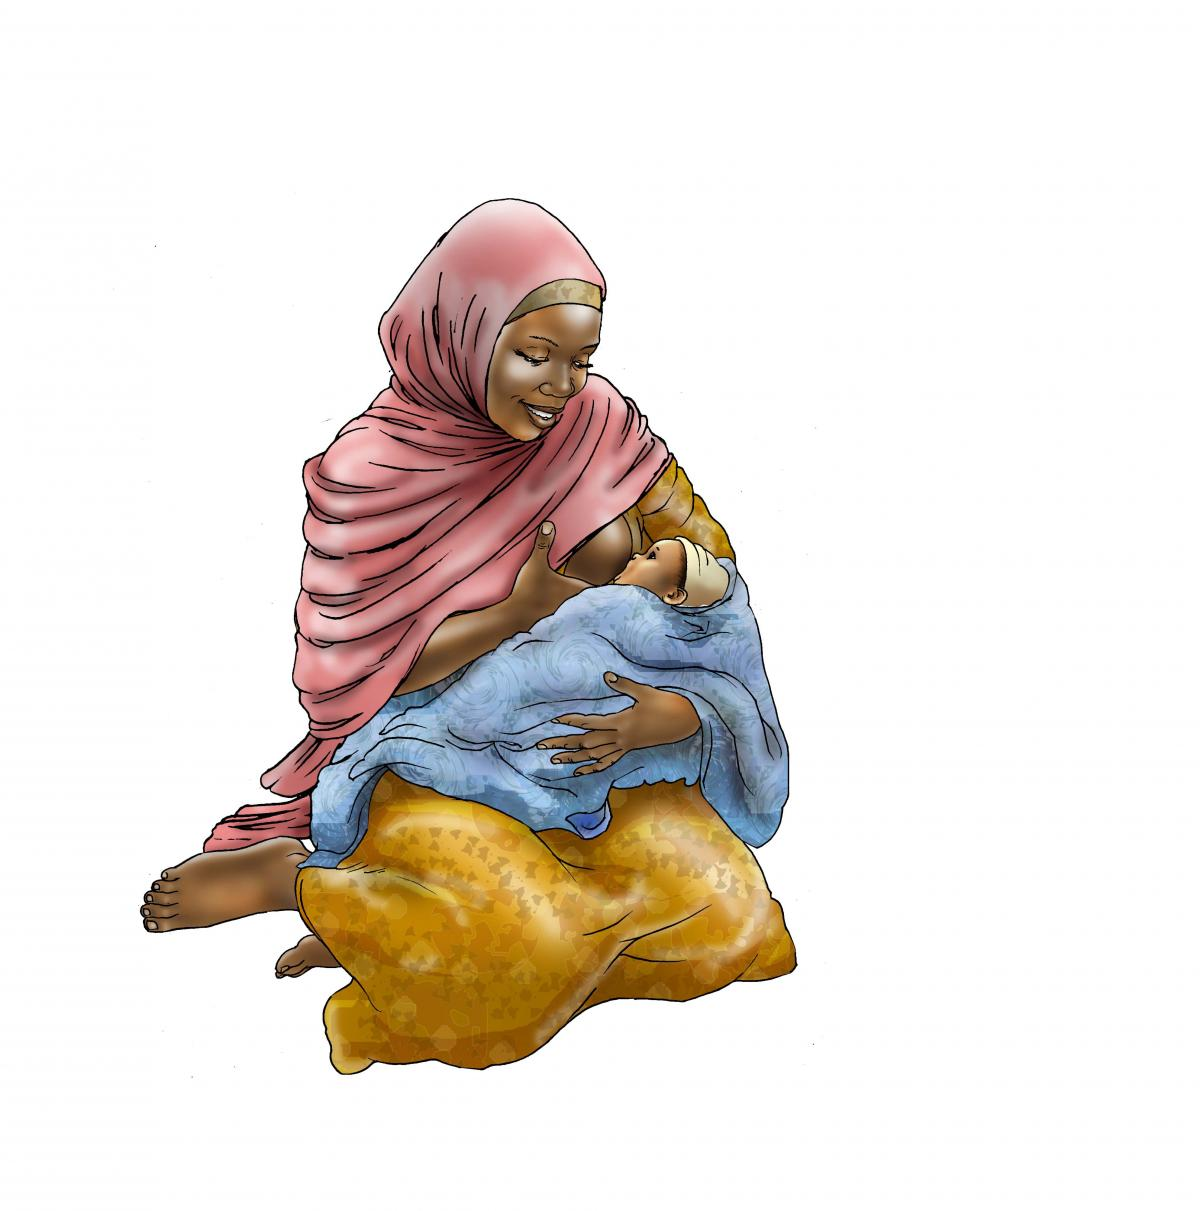 Breastfeeding - Breastfeeding positions 0-6 mo - 02 - Niger